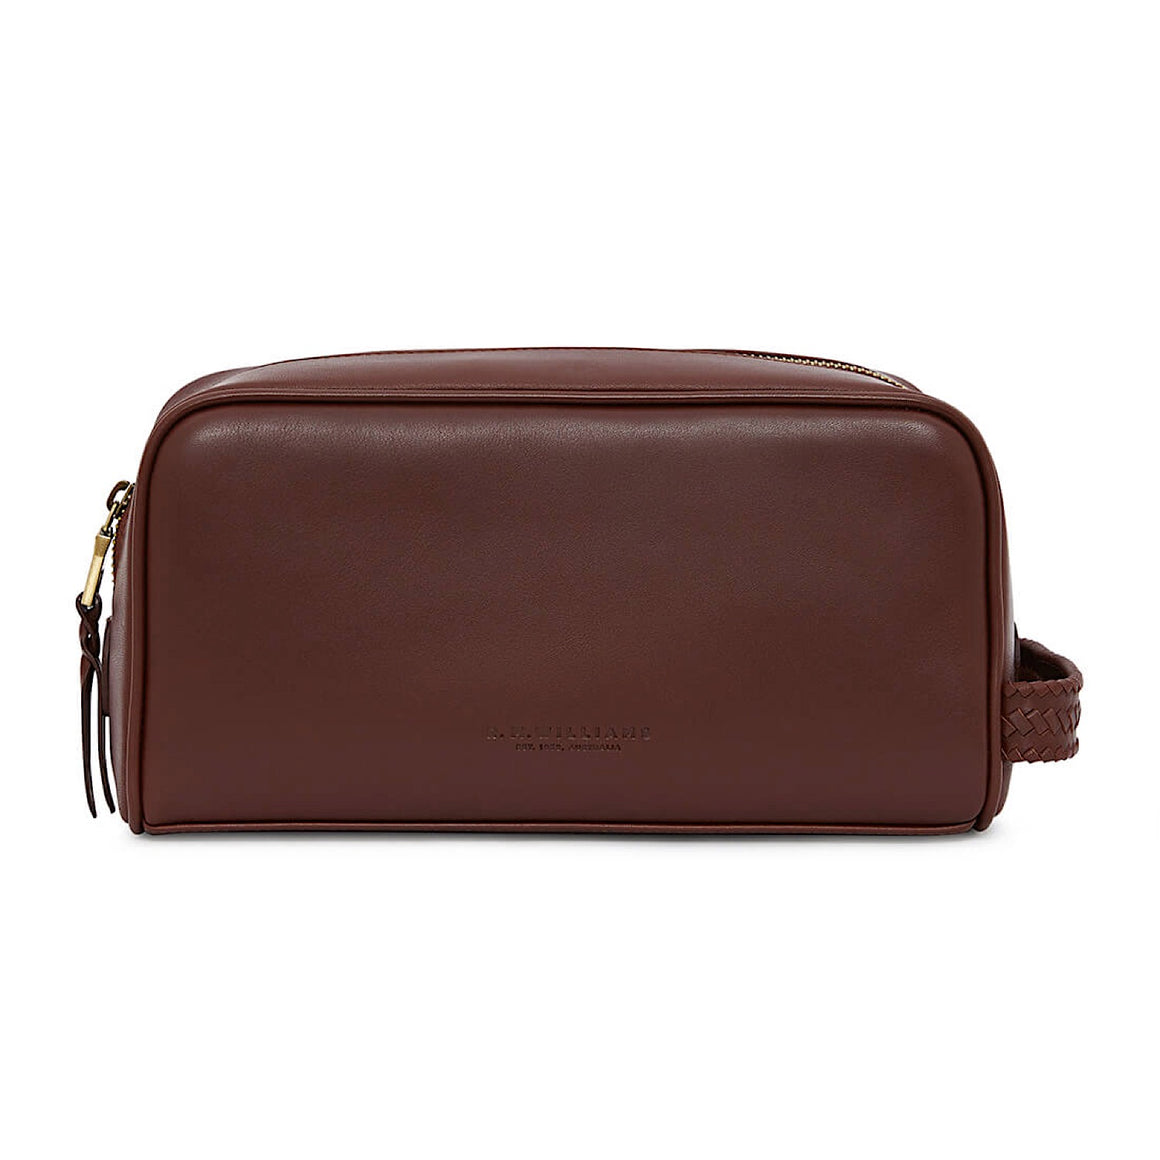 R.M.Williams City Wash Bag Chestnut CHS0ECH410100